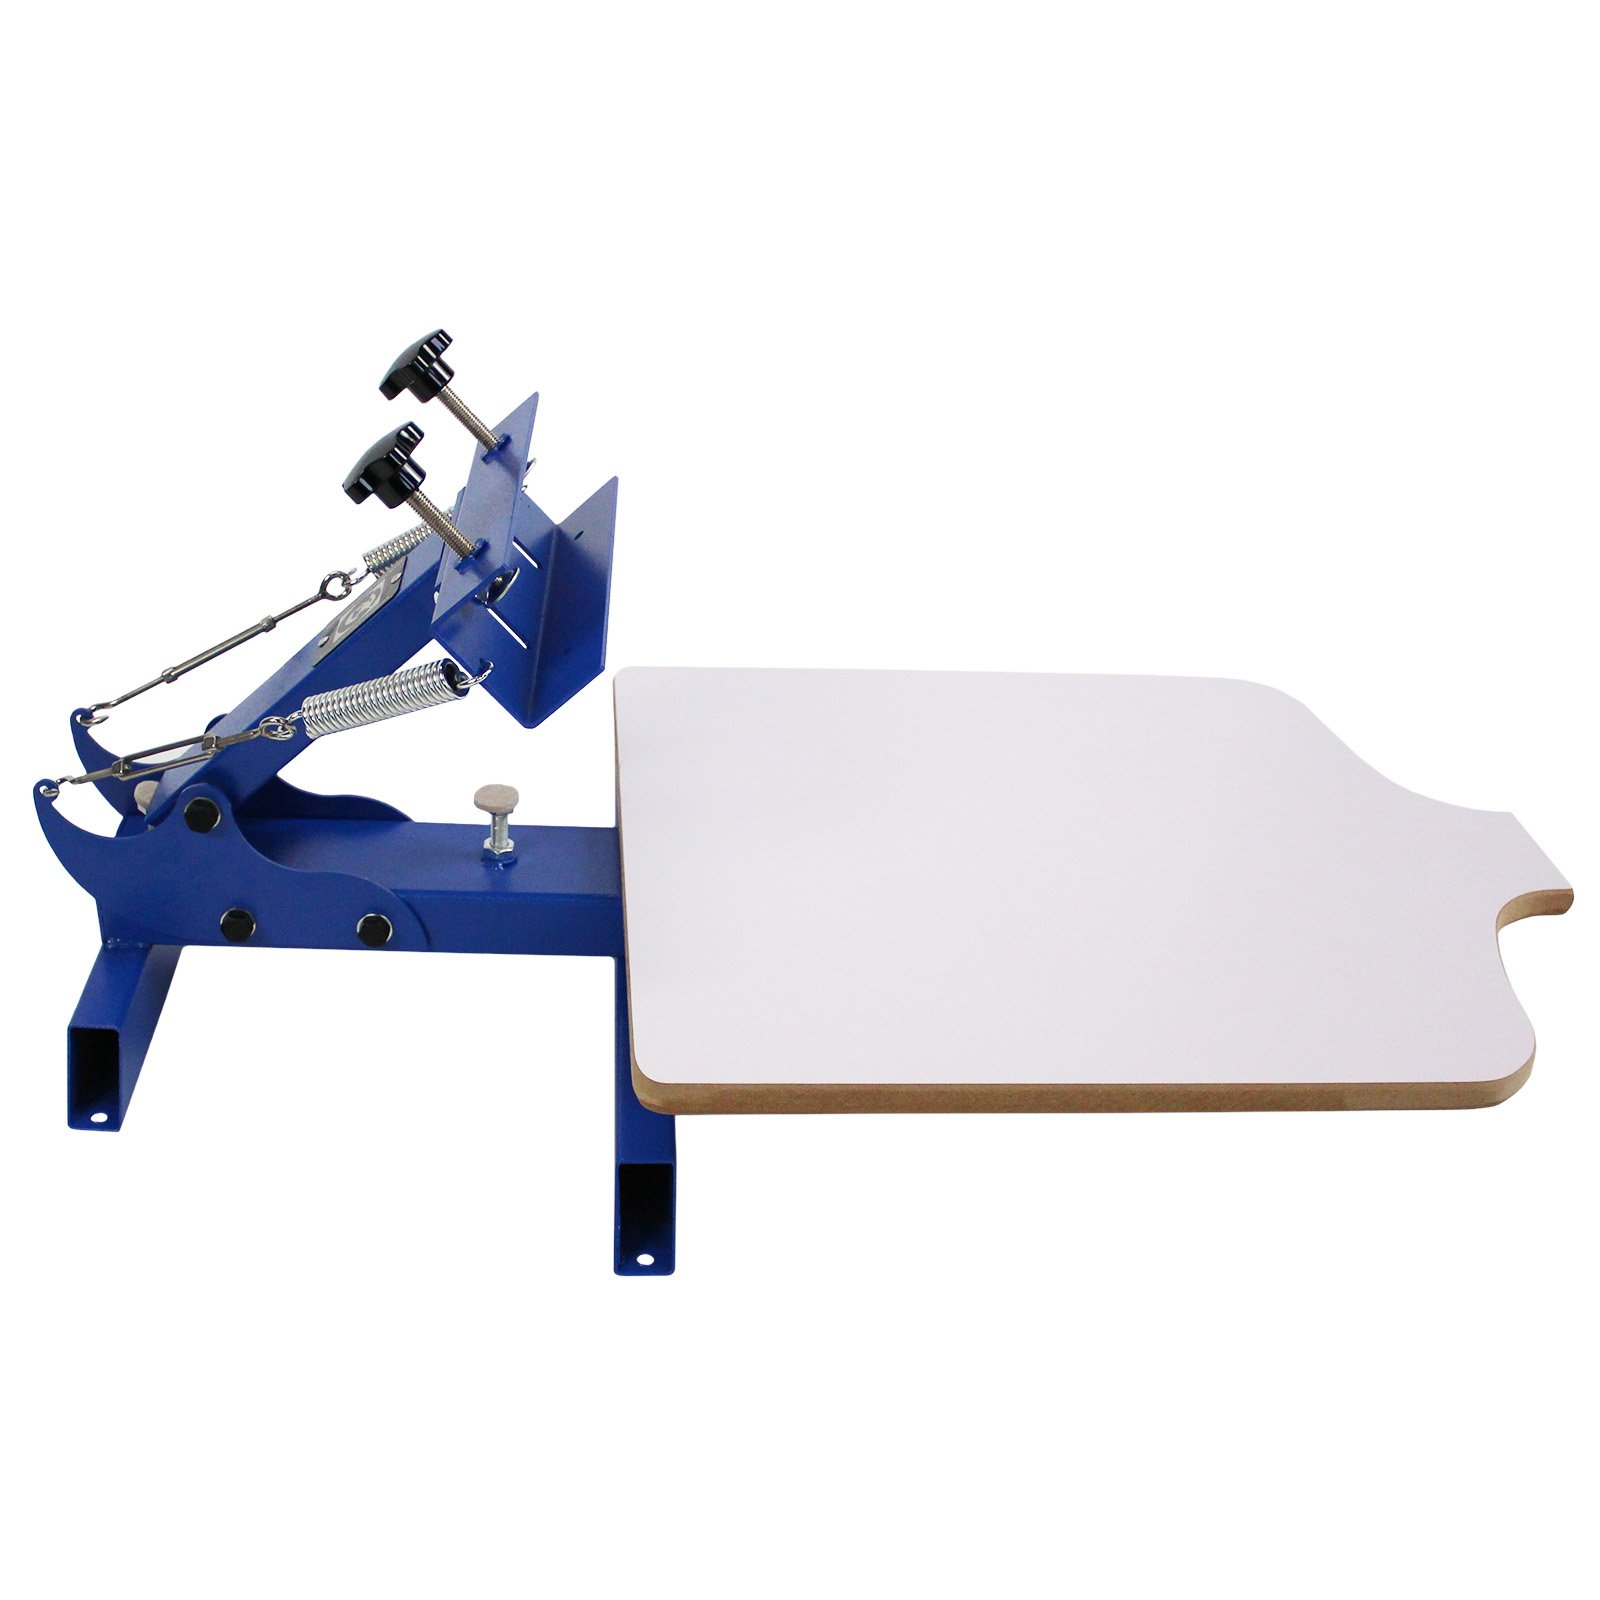 Simple Single 1 Color 1 Station T-shirt Silk Screen Printing Machine NS101 by Commercial Bargains